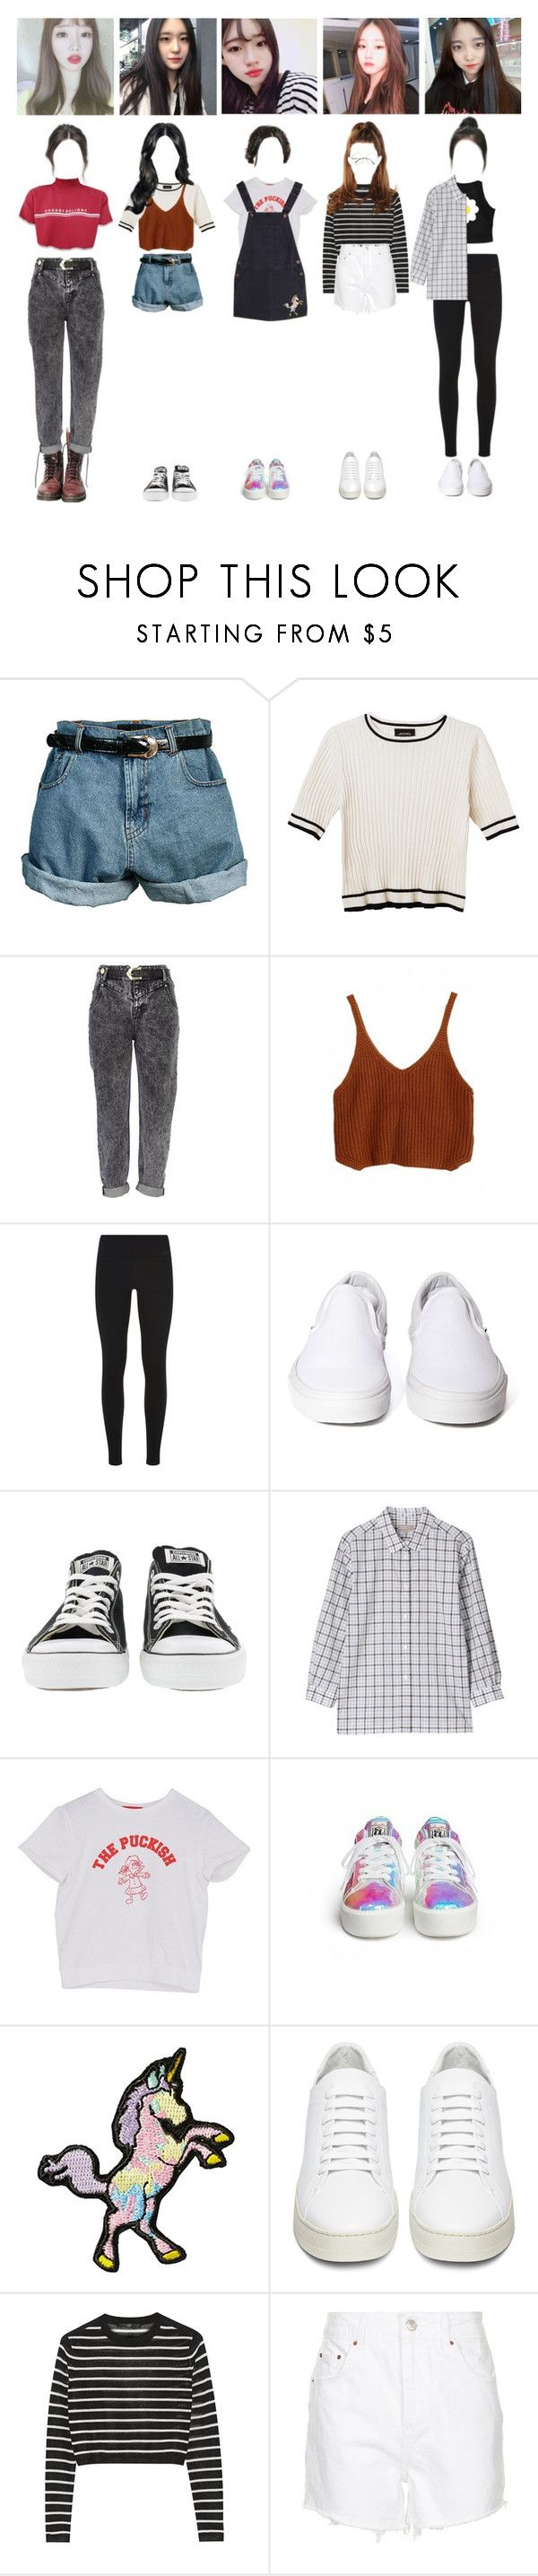 """Alpha:bet Girls : Highlight Maker Audition"" by blackheart-redtears ❤ liked on Polyvore featuring Retrò, Monki, River Island, NIKE, Vans, Converse, Margaret Howell, Stoney Clover Lane, Off-White and TIBI"